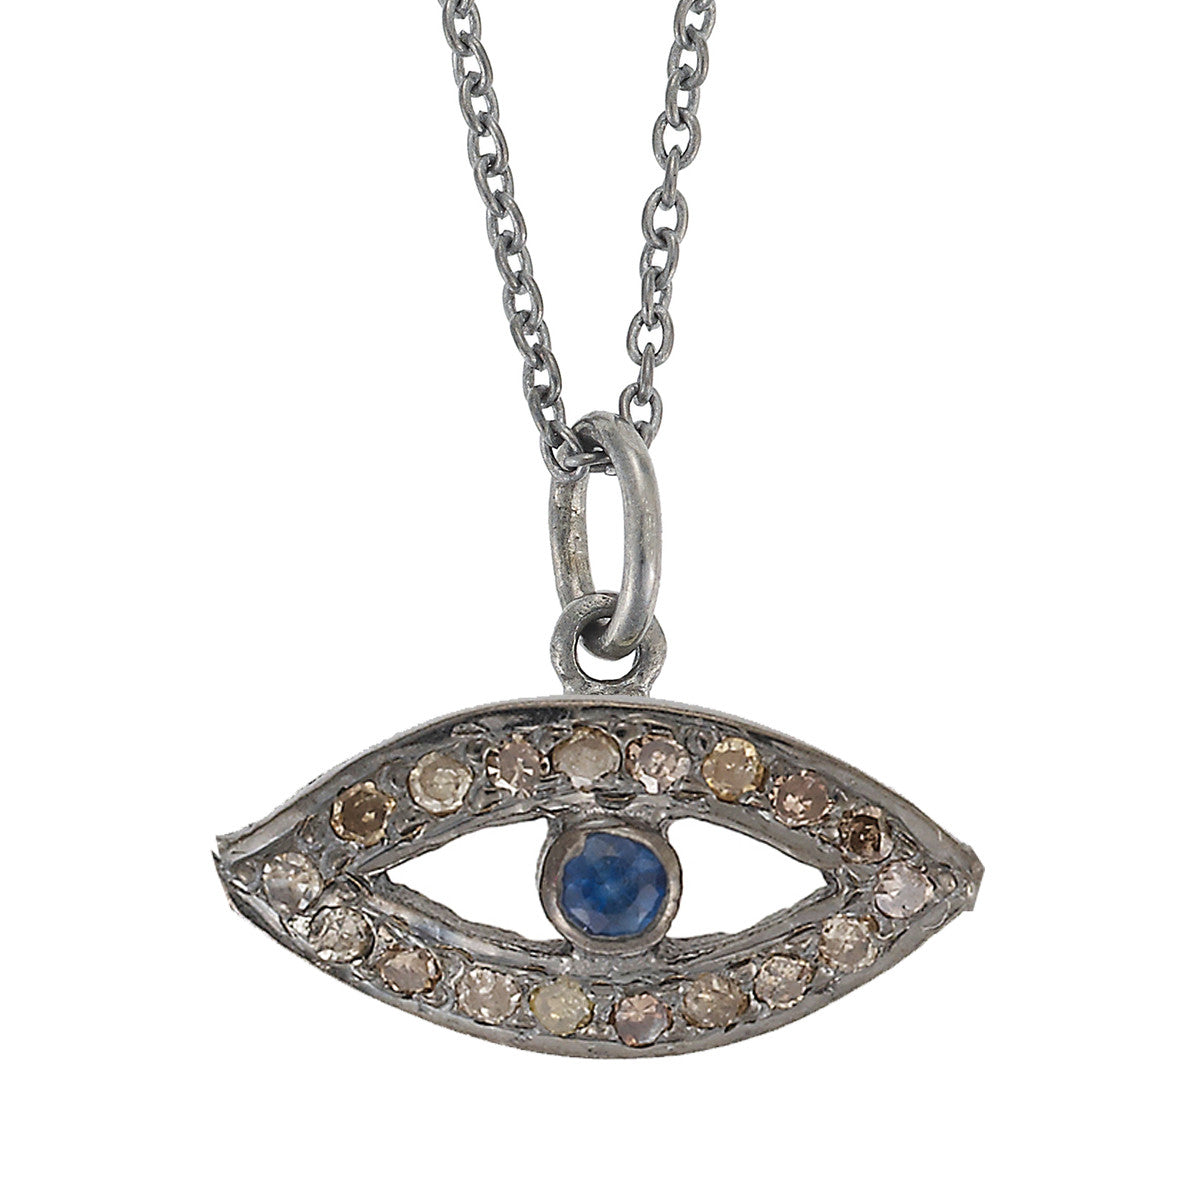 Small Eye Necklace - Blue Sapphire